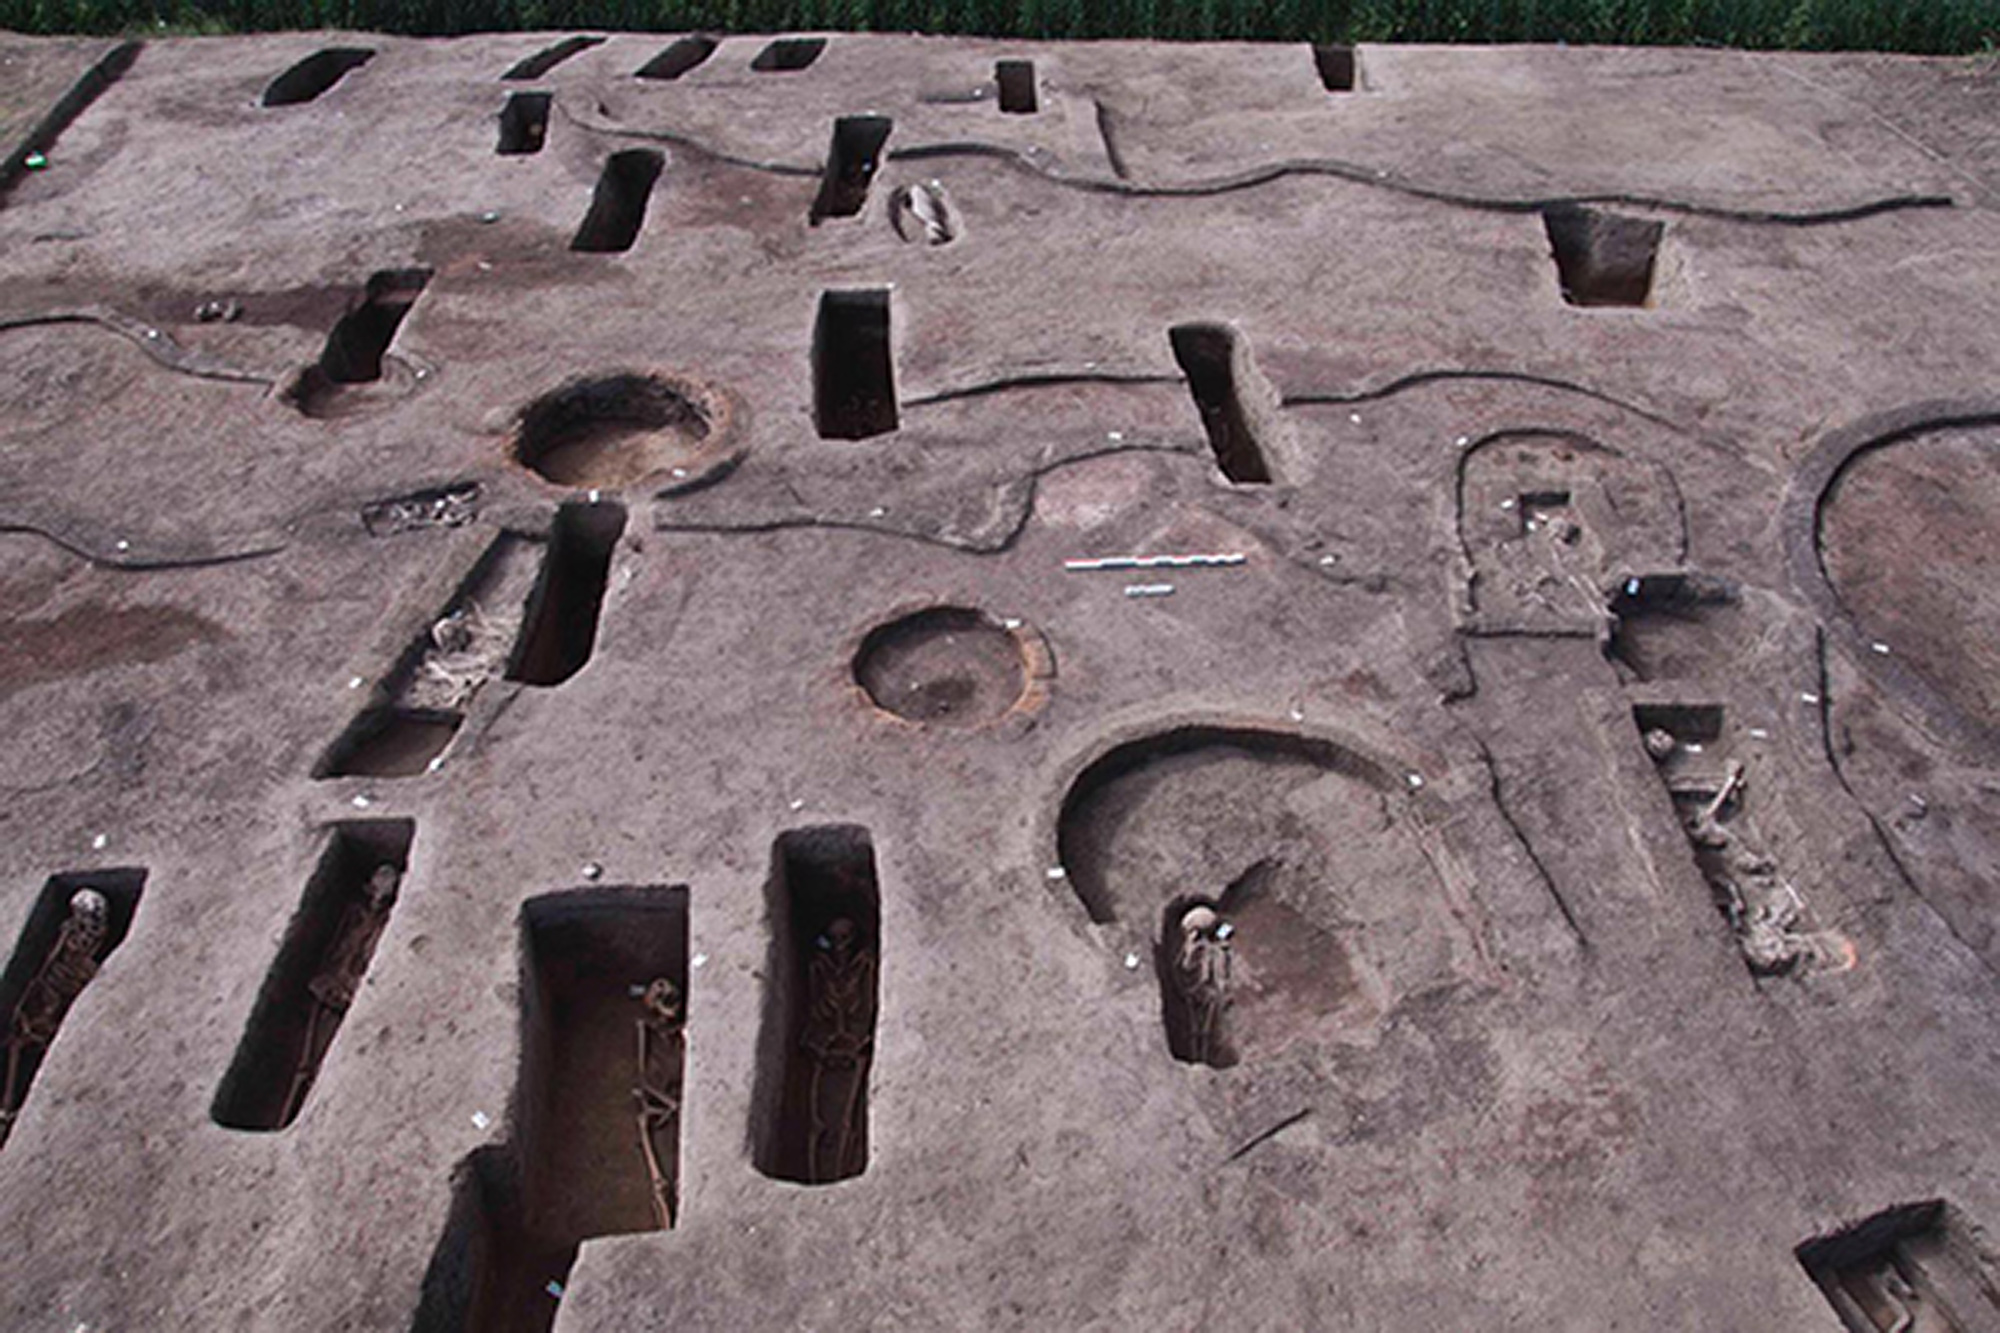 <p>More than 100 ancient burial tombs have been unearthed in the Koum el-Khulgan archeological site in Egypt. (Egyptian Ministry of Tourism and Antiquities/Real Press)</p>